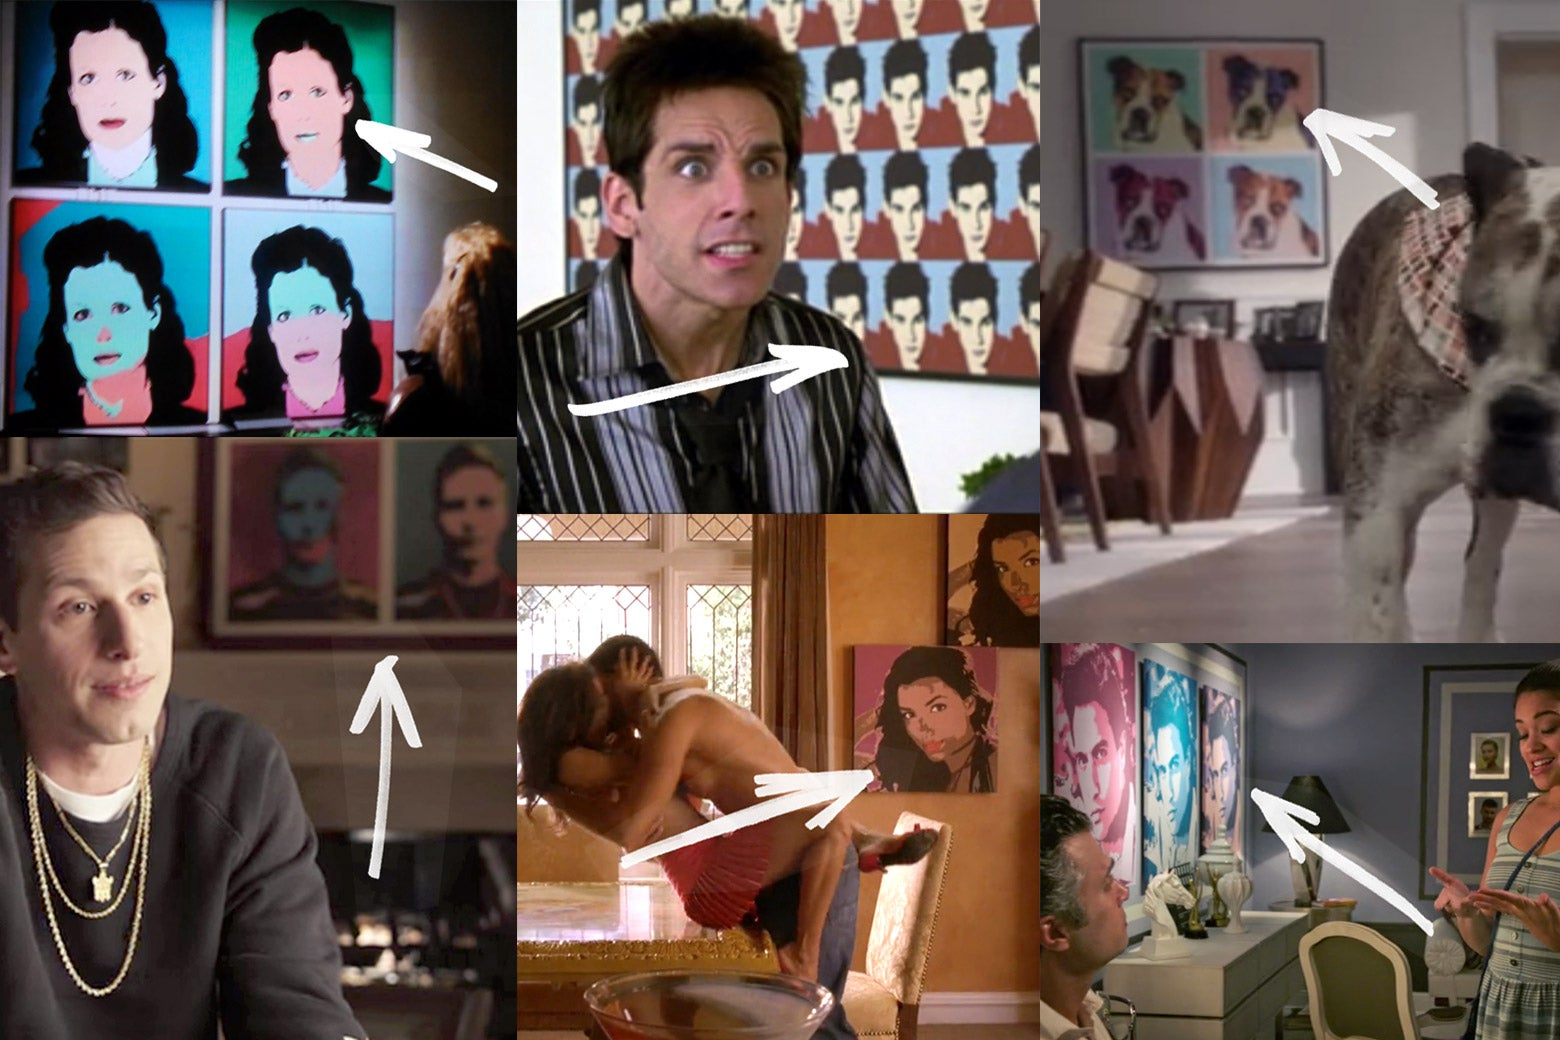 Movie scenes with Warhol-style portraits in the background.